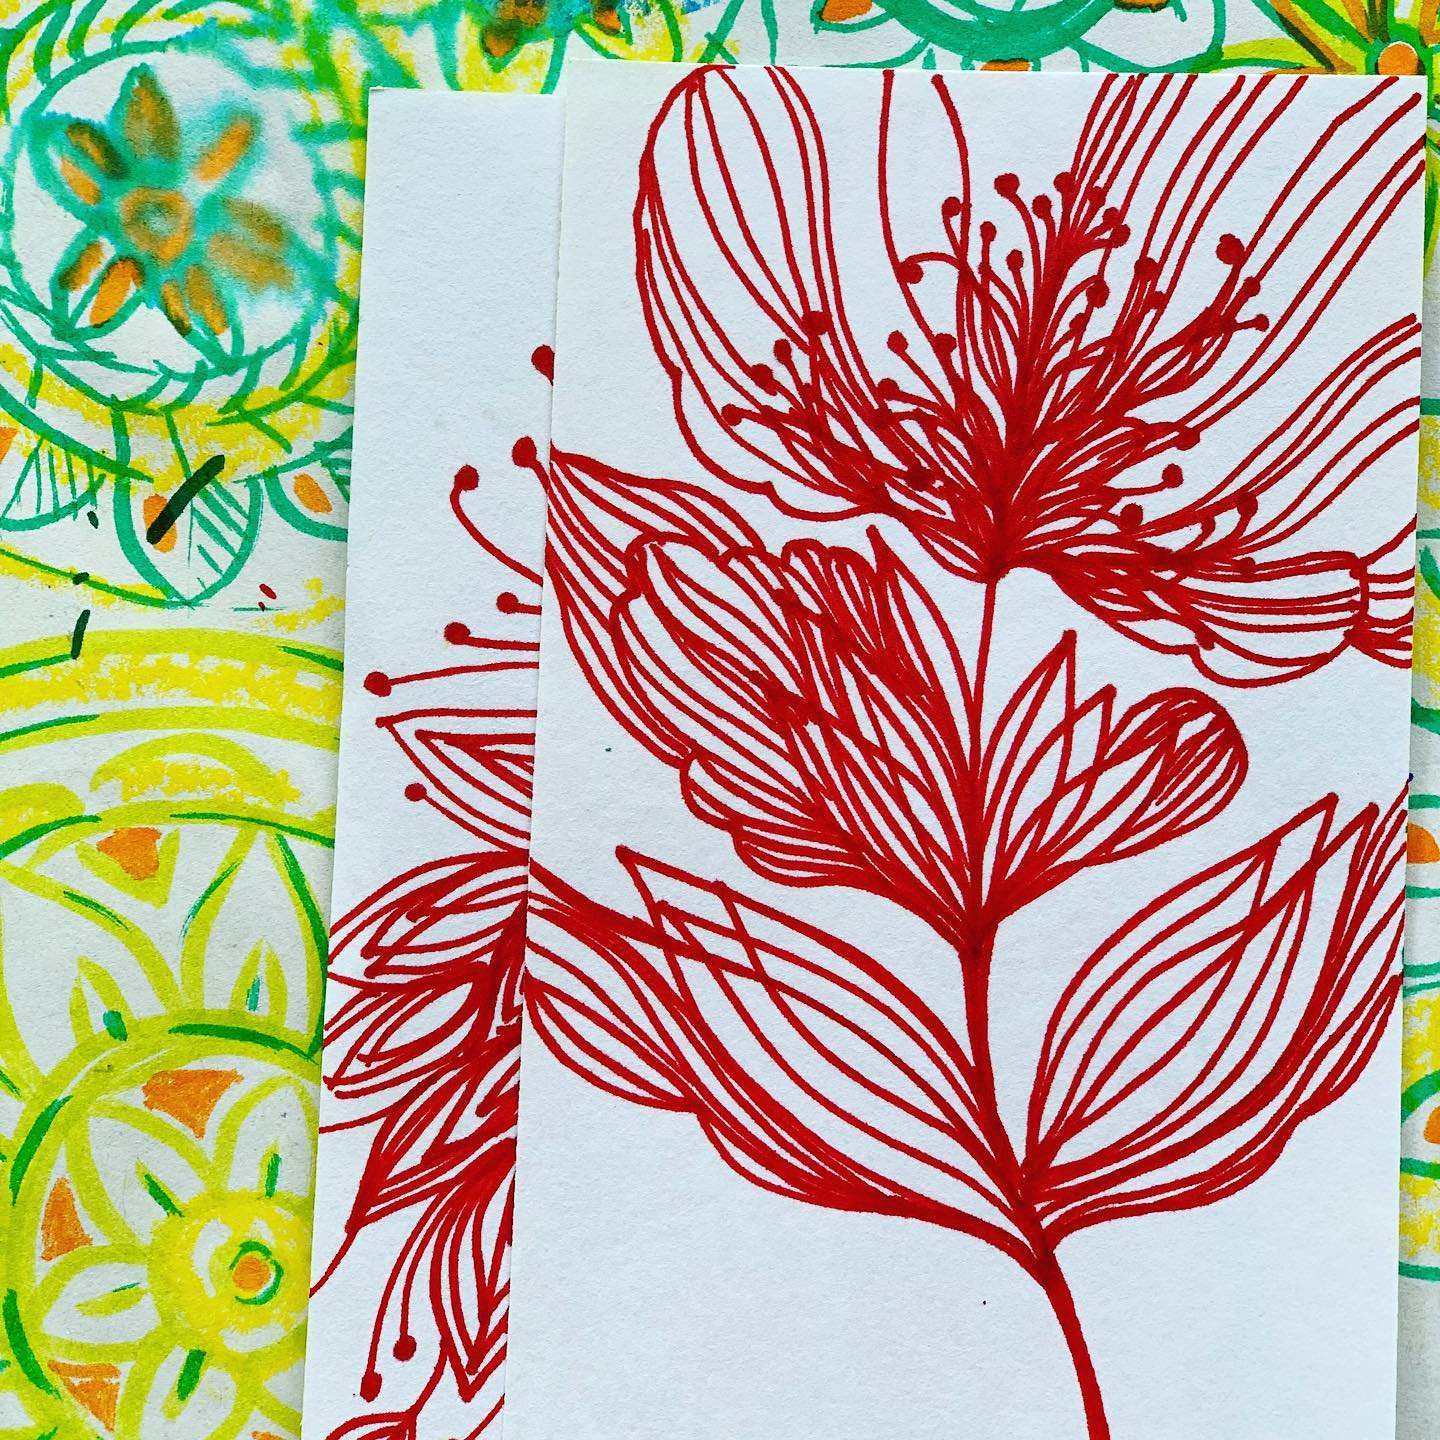 Floral doodles are always fascinating!